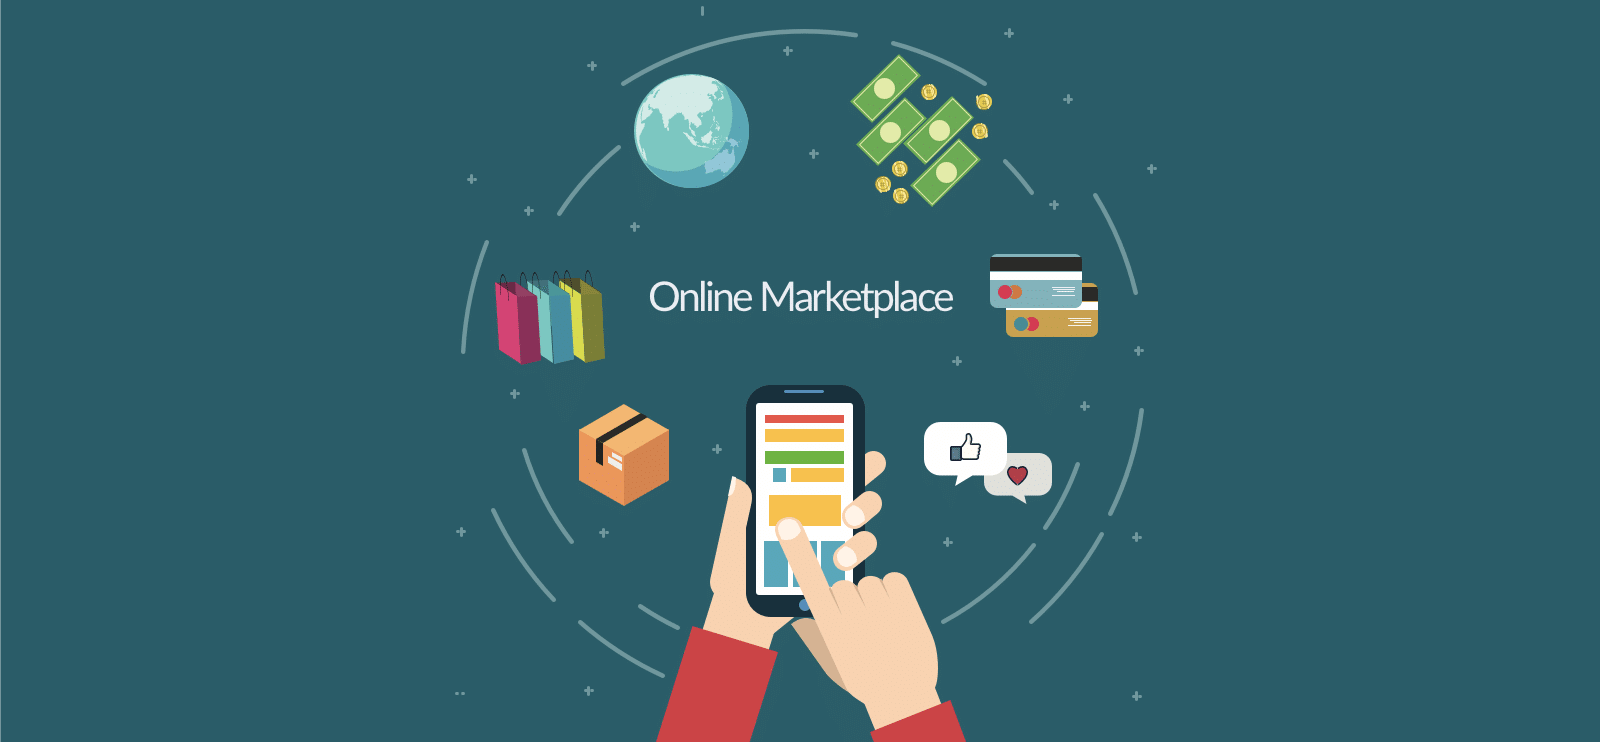 5 Questions to Ask While Building Your Marketplace Platform